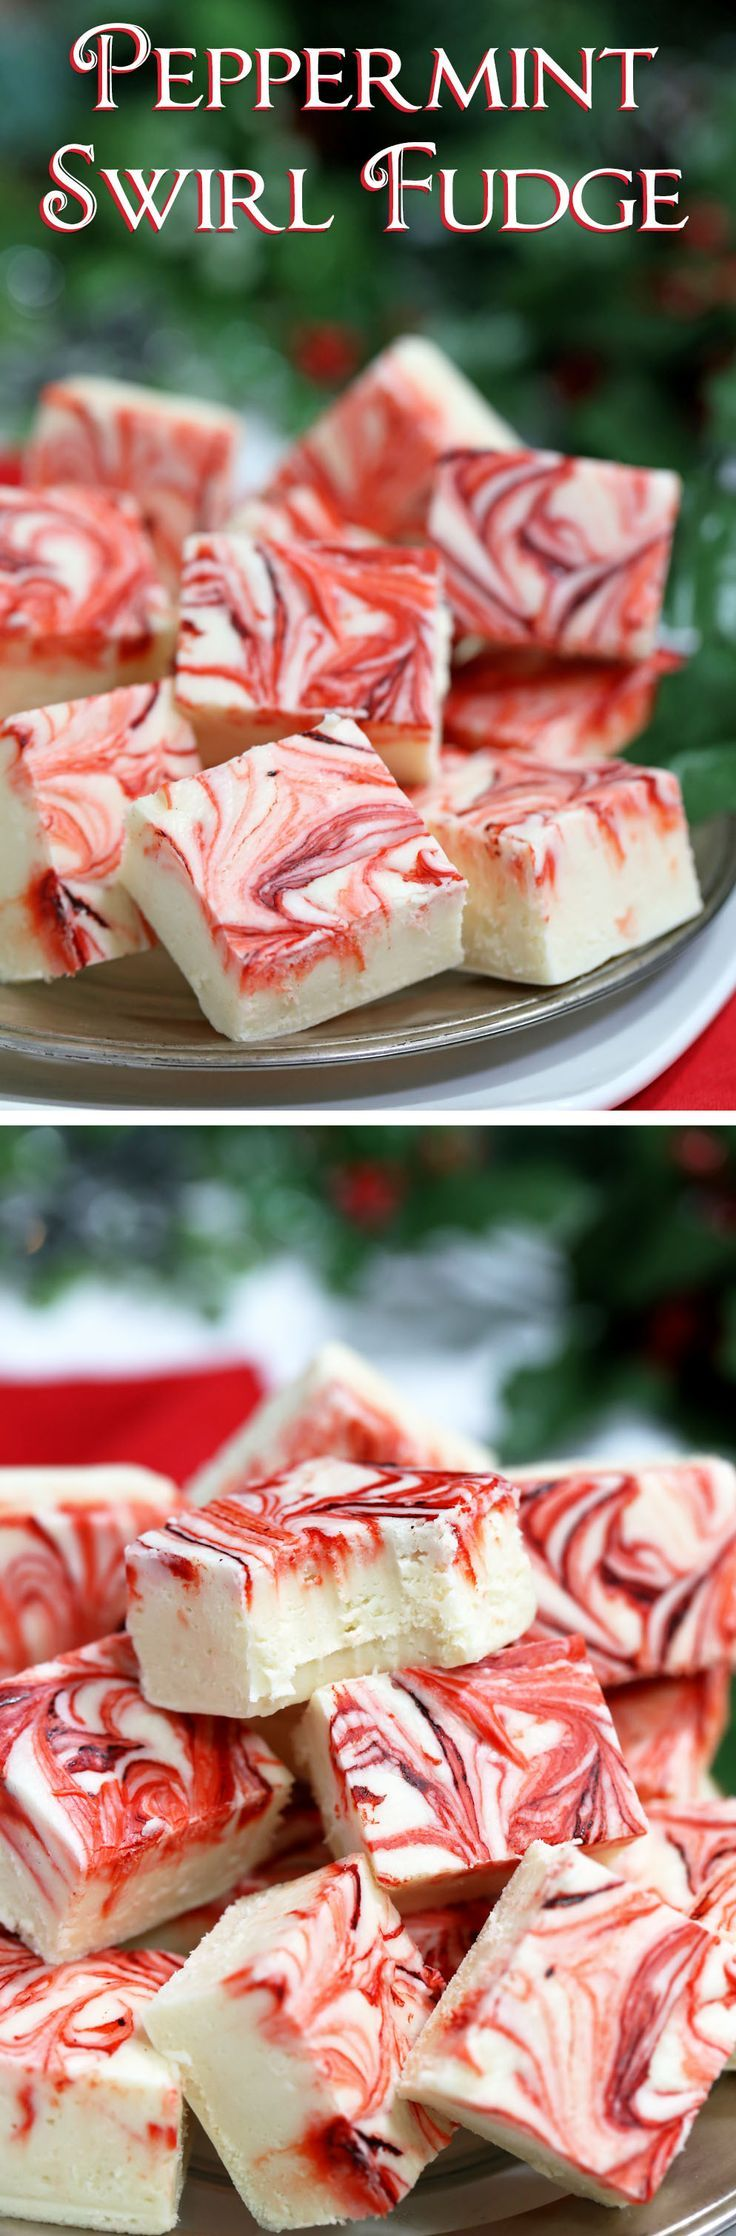 Swirled Peppermint Fudge - white chocolate fudge with a peppermint flavor! Super easy, and great for gifts! | From http://candy.about.com